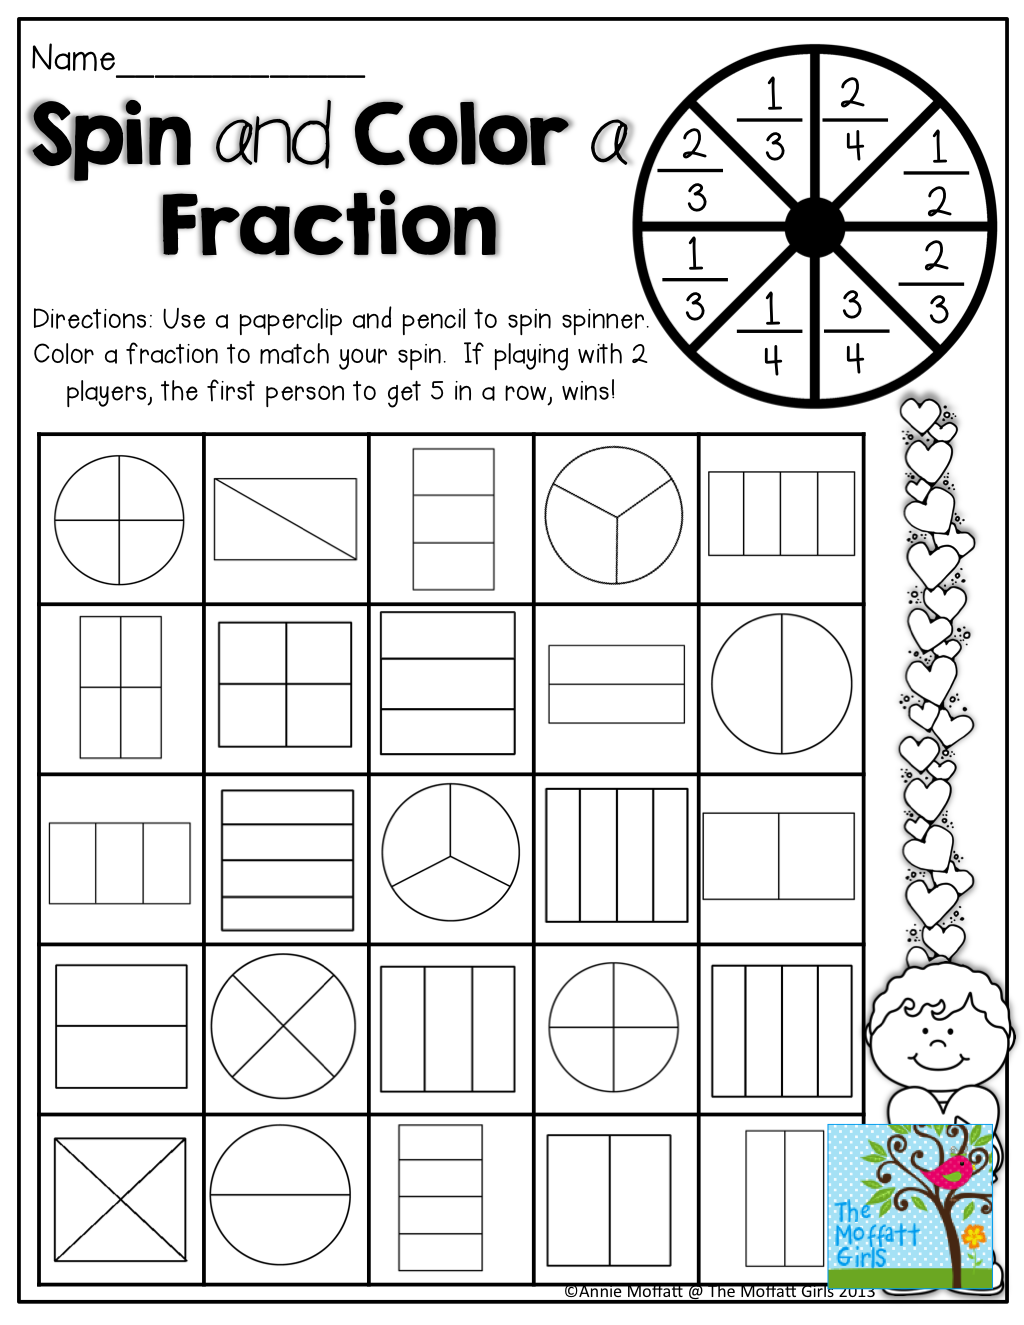 Fraction Worksheets For Grade 1 [ 1325 x 1024 Pixel ]